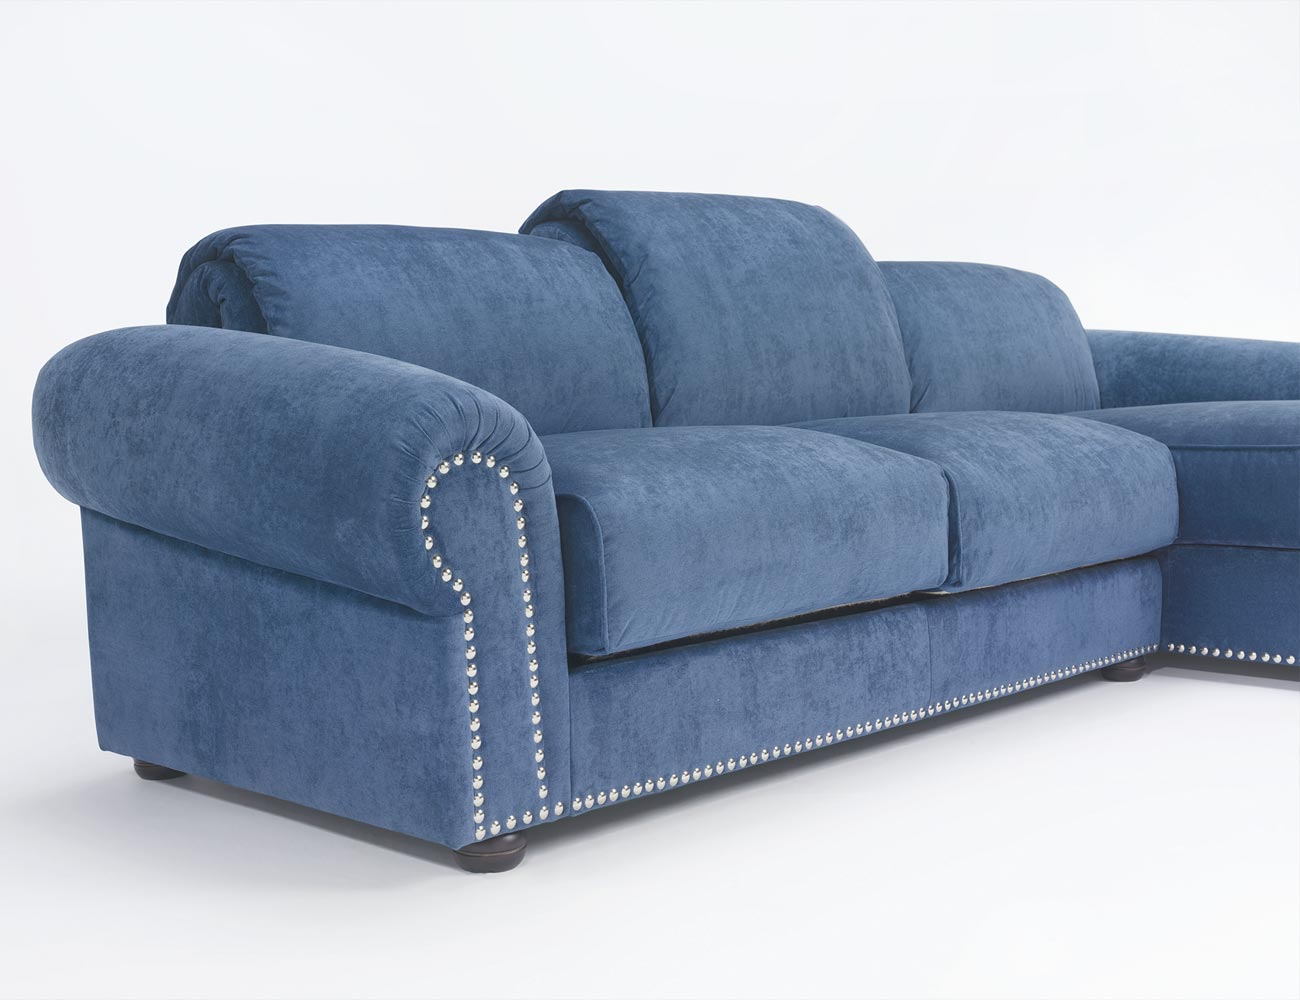 Sofa chaiselongue gran lujo decorativo azul 145